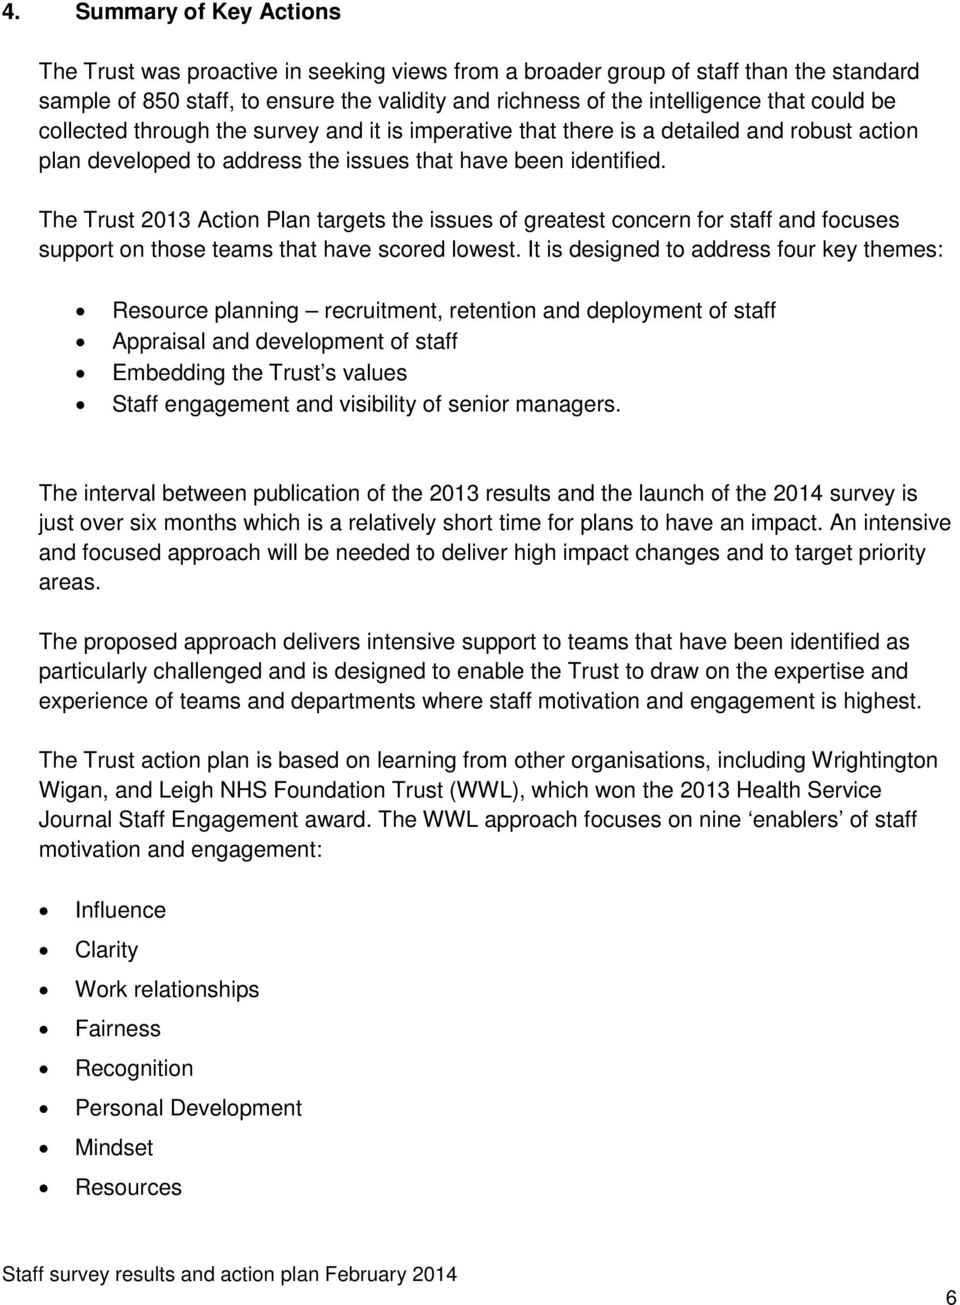 The Trust 2013 Action Plan targets the issues of greatest concern for staff and focuses support on those teams that have scored lowest.